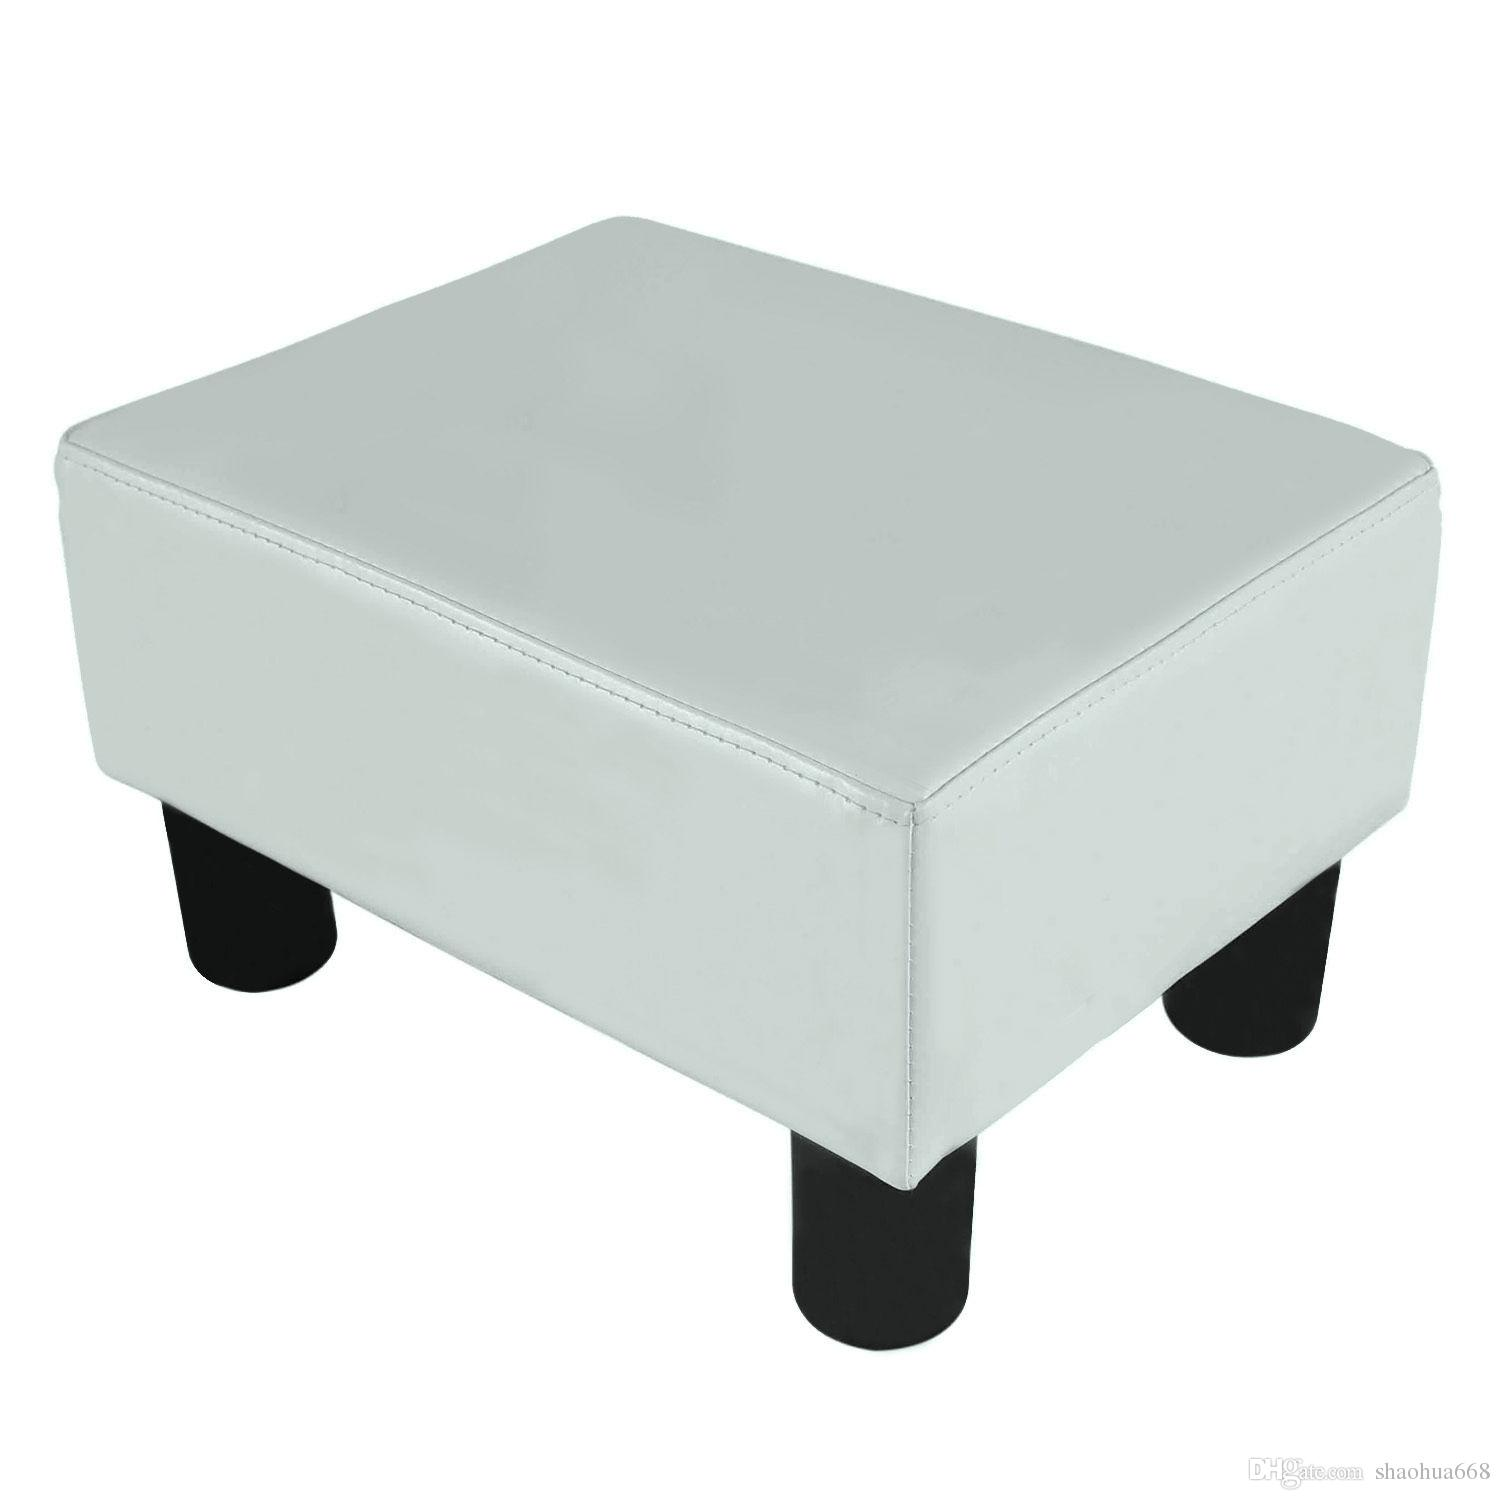 2017 modern faux leather ottoman footrest stool foot rest for 8 foot couch